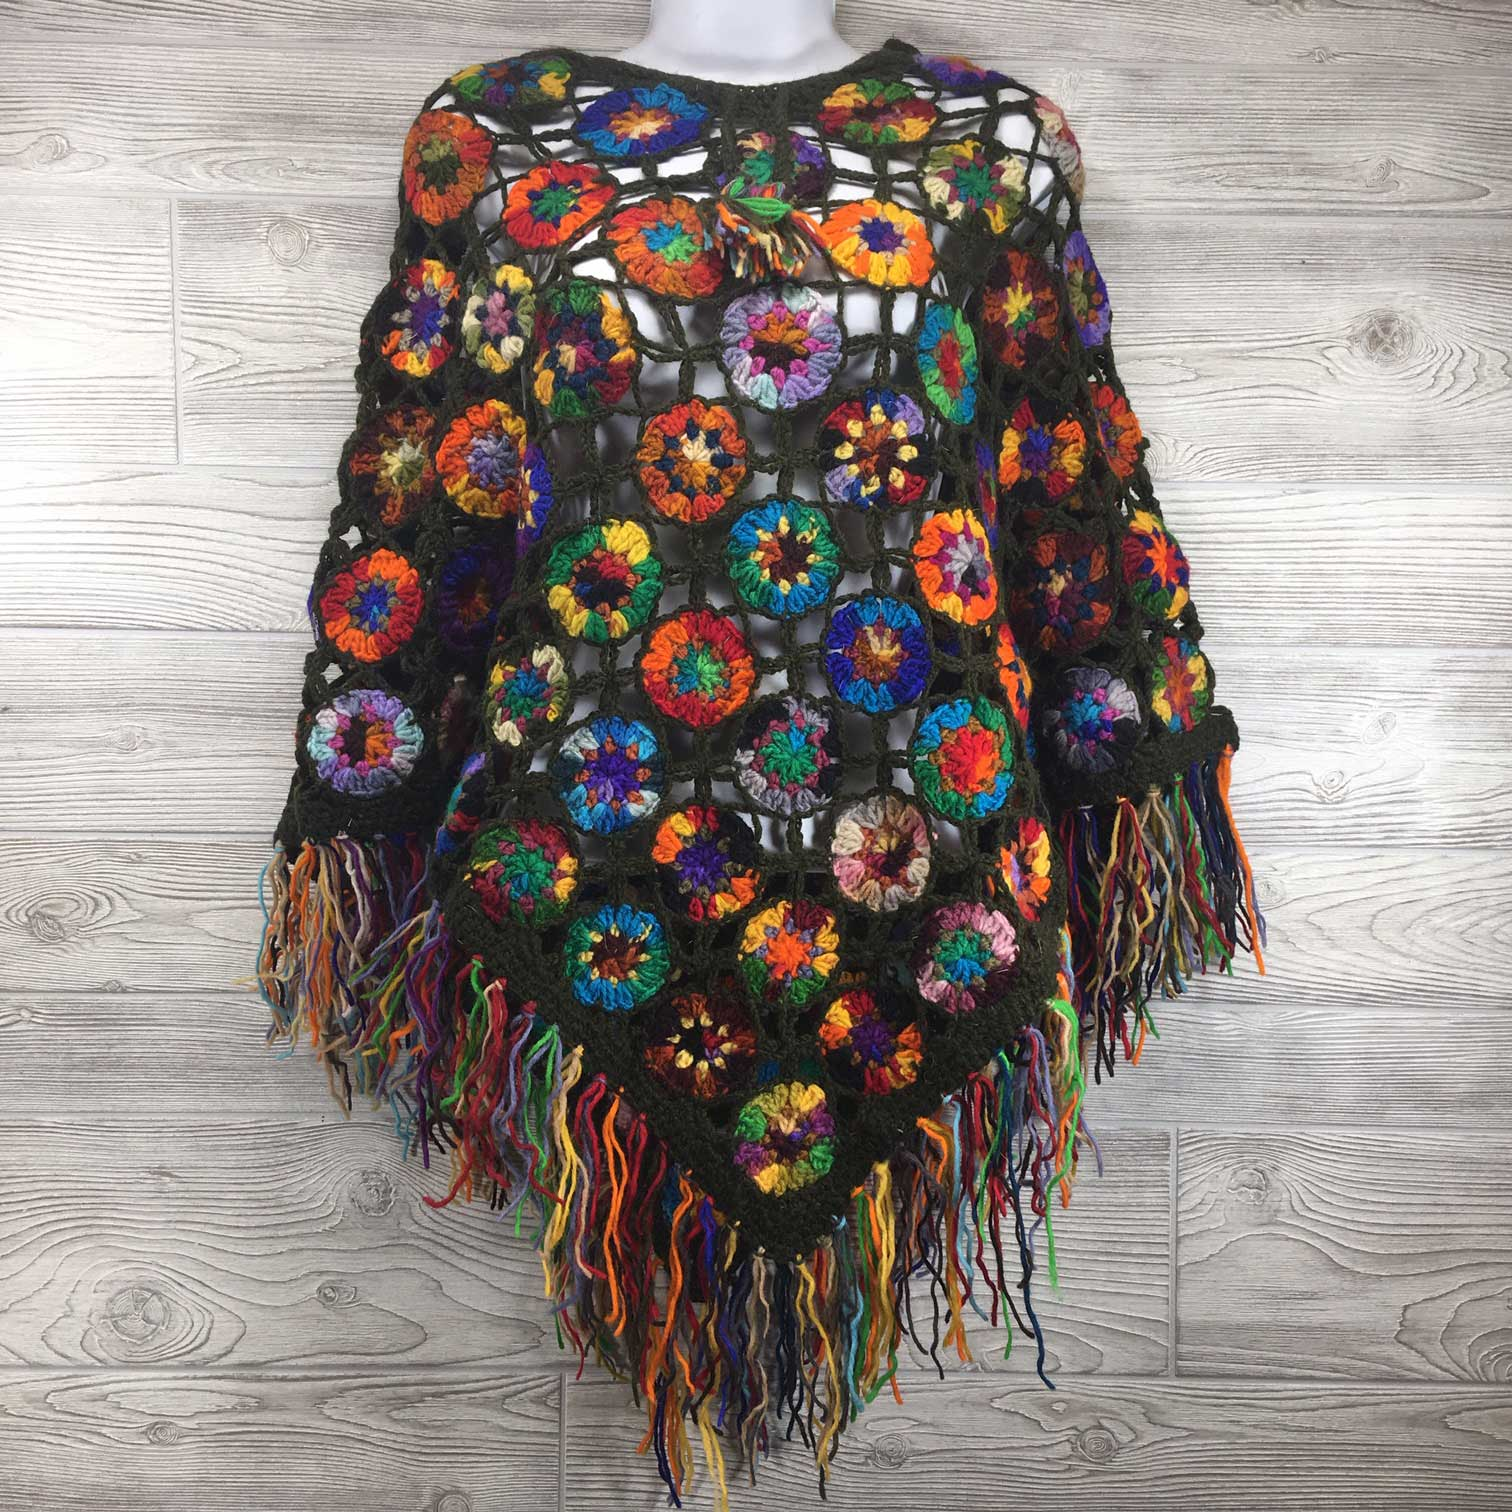 Women's Crochet Granny Square Boho Wool Poncho with Fringes - One Size Fits Most - Multicolored Dark Olive Green